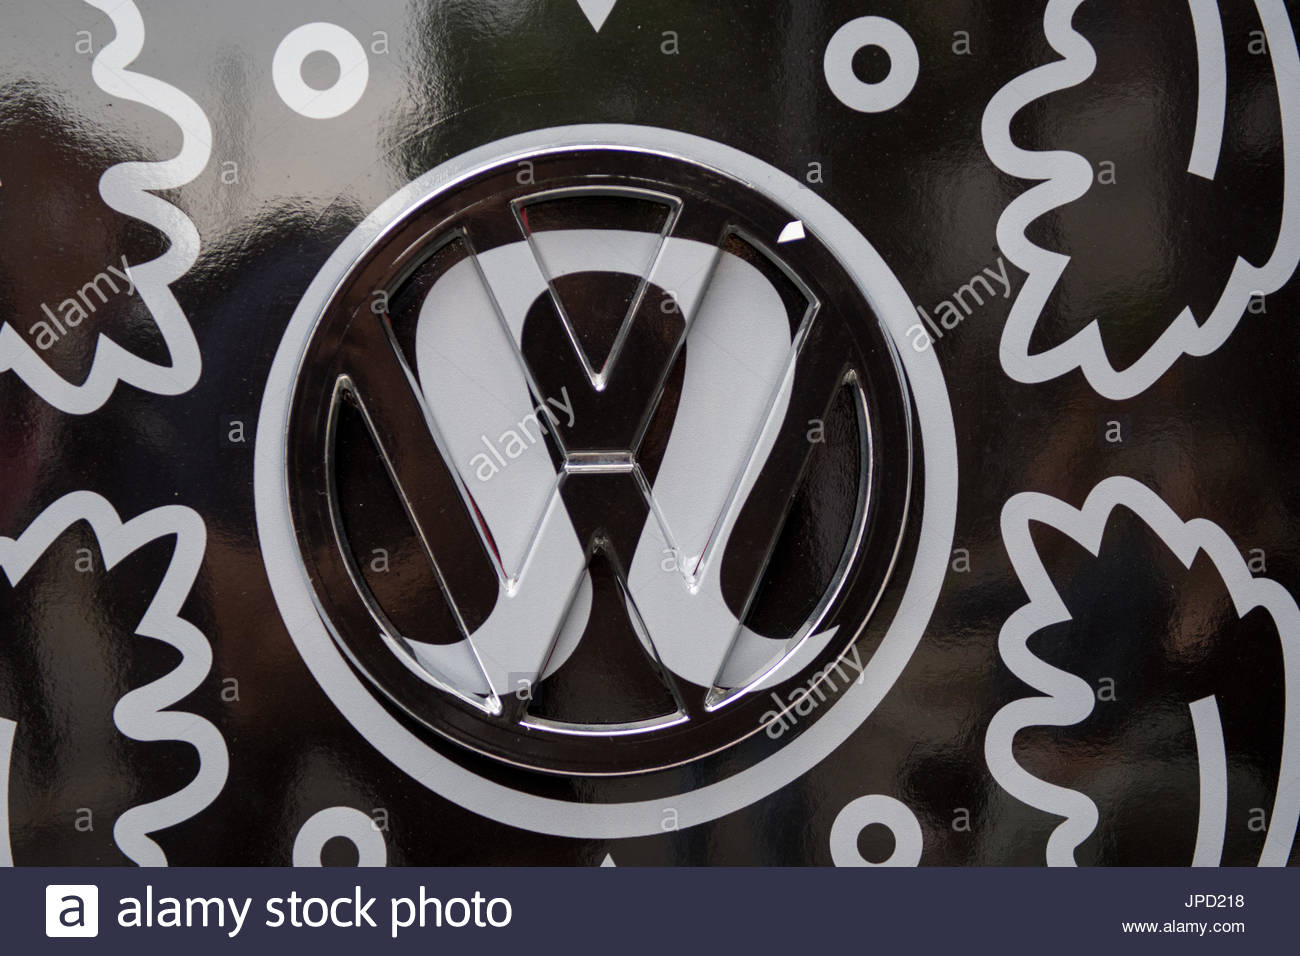 Lululemon stock photos lululemon stock images alamy lululemon logo or brand symbol over metallic surface of an old vw permanently parked in ossignton biocorpaavc Gallery